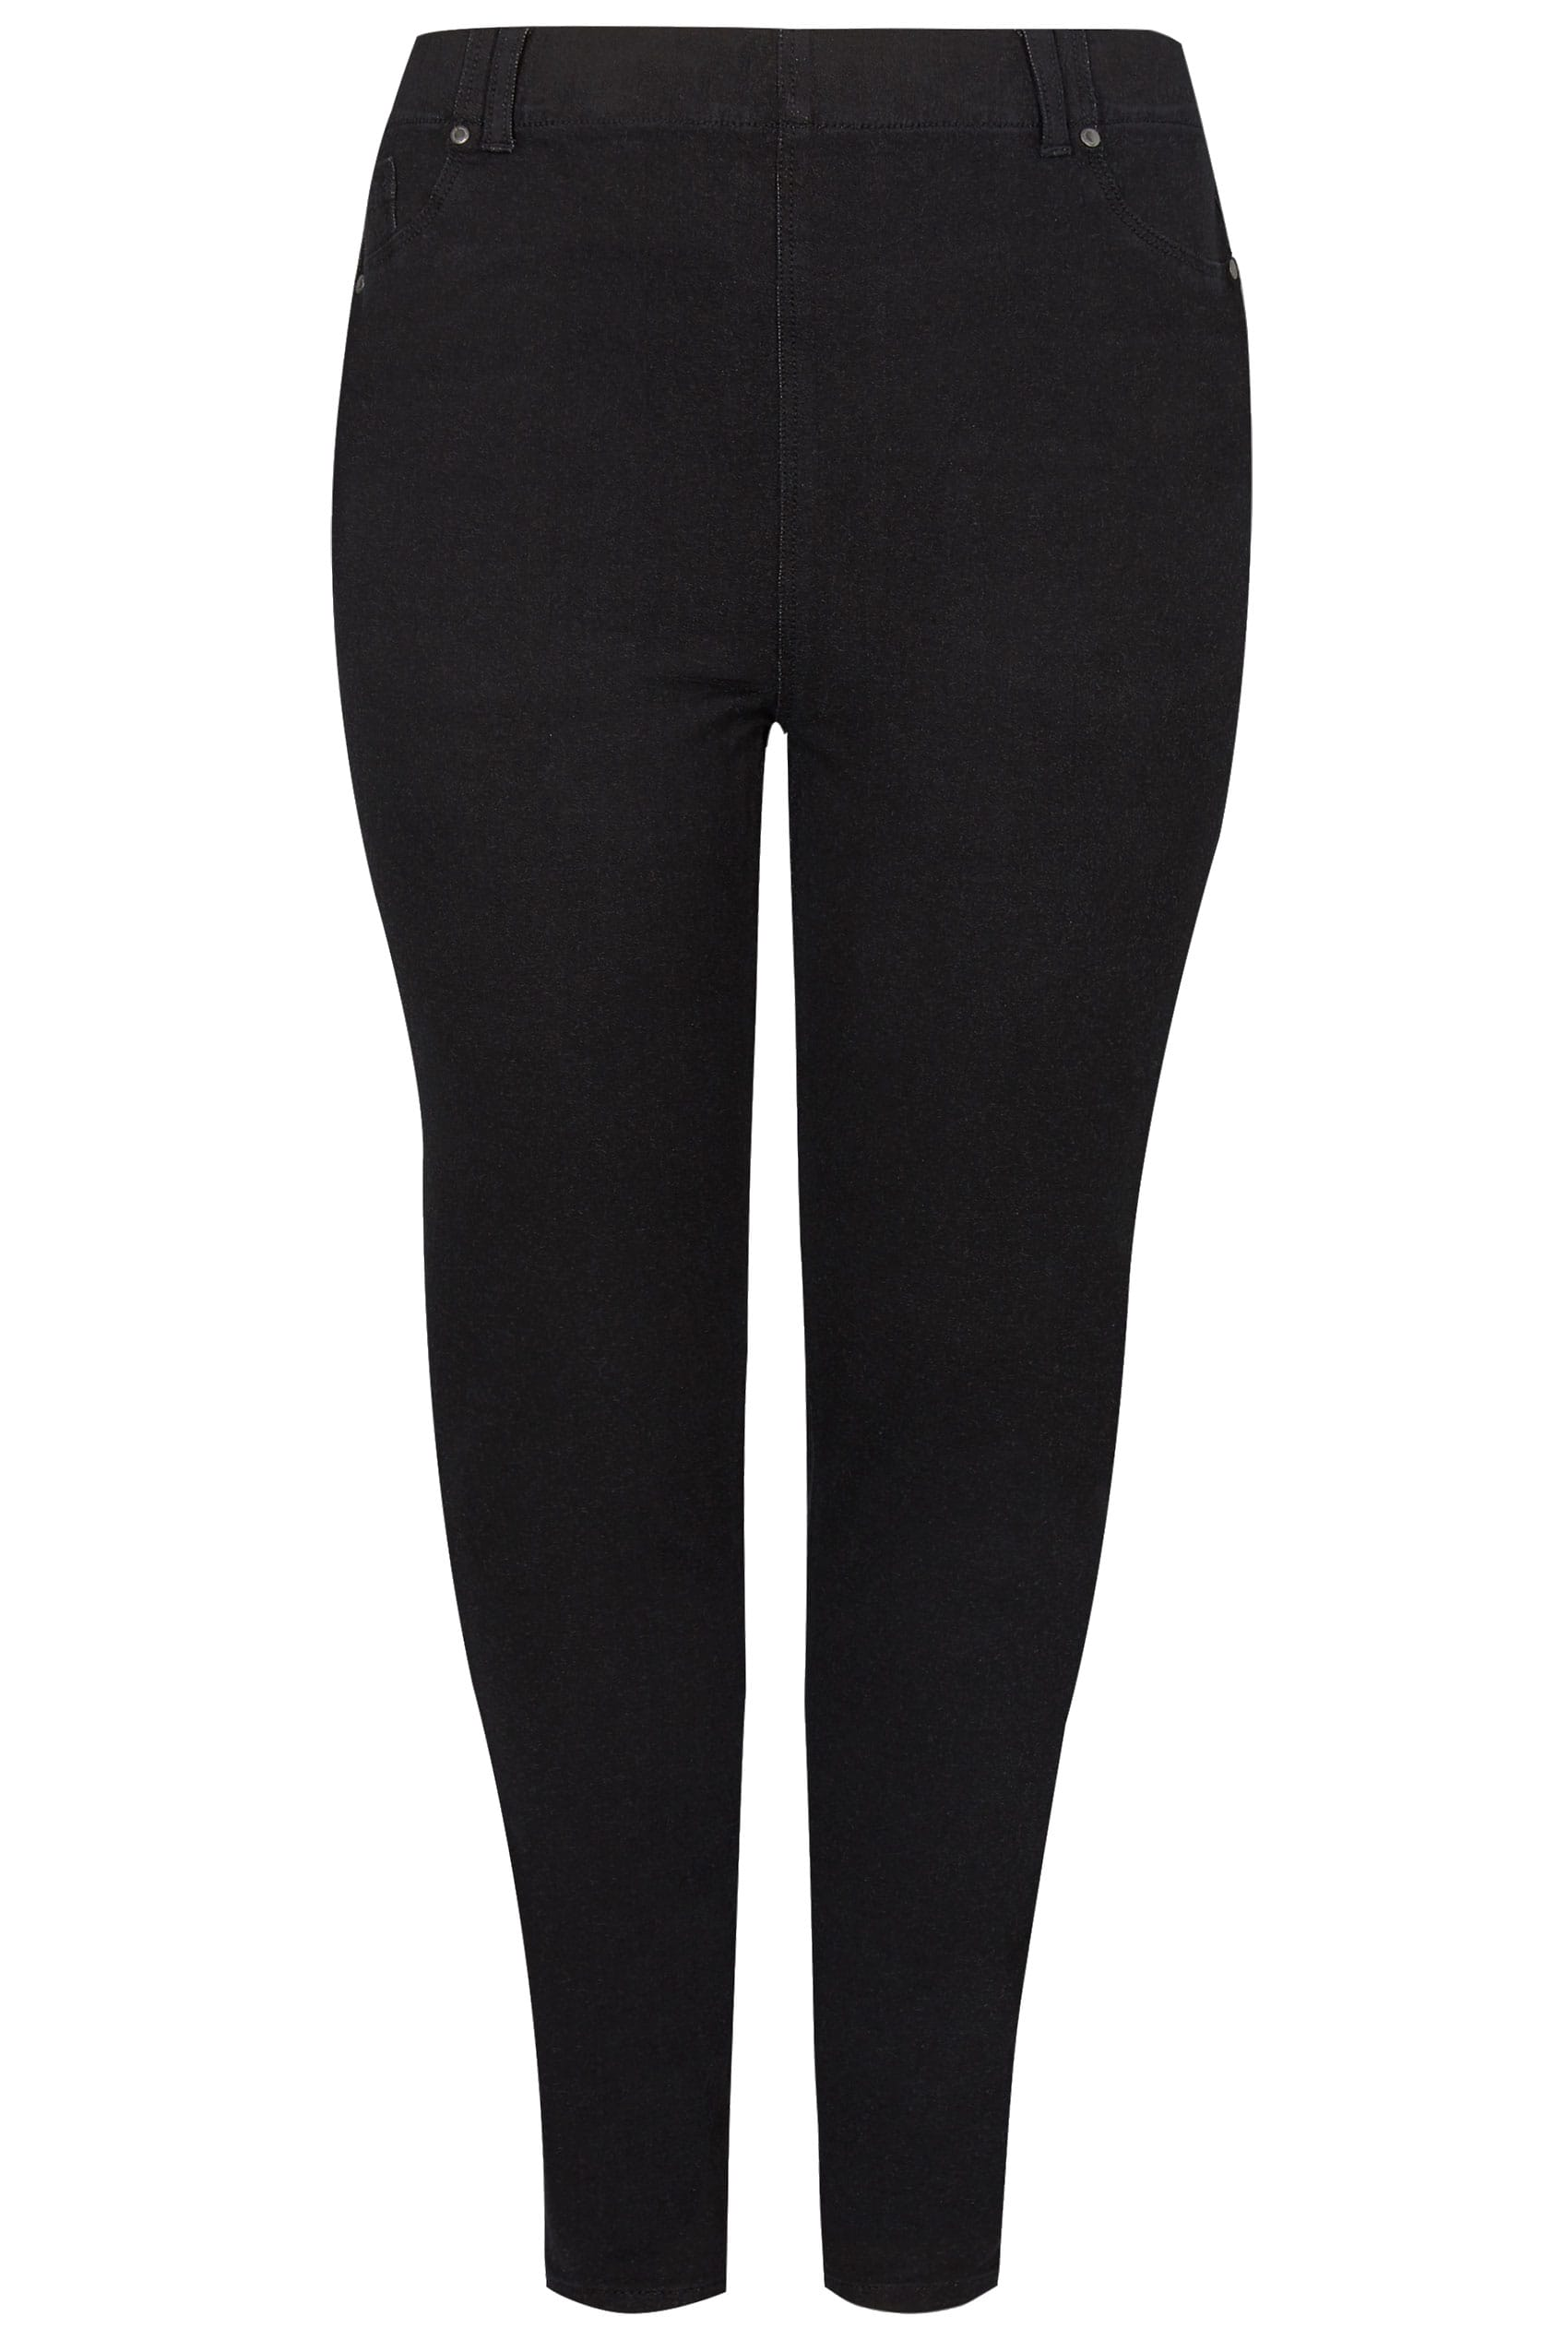 Rooms: Black Ultimate Comfort BEST FRIEND Jeggings , Plus Size 16